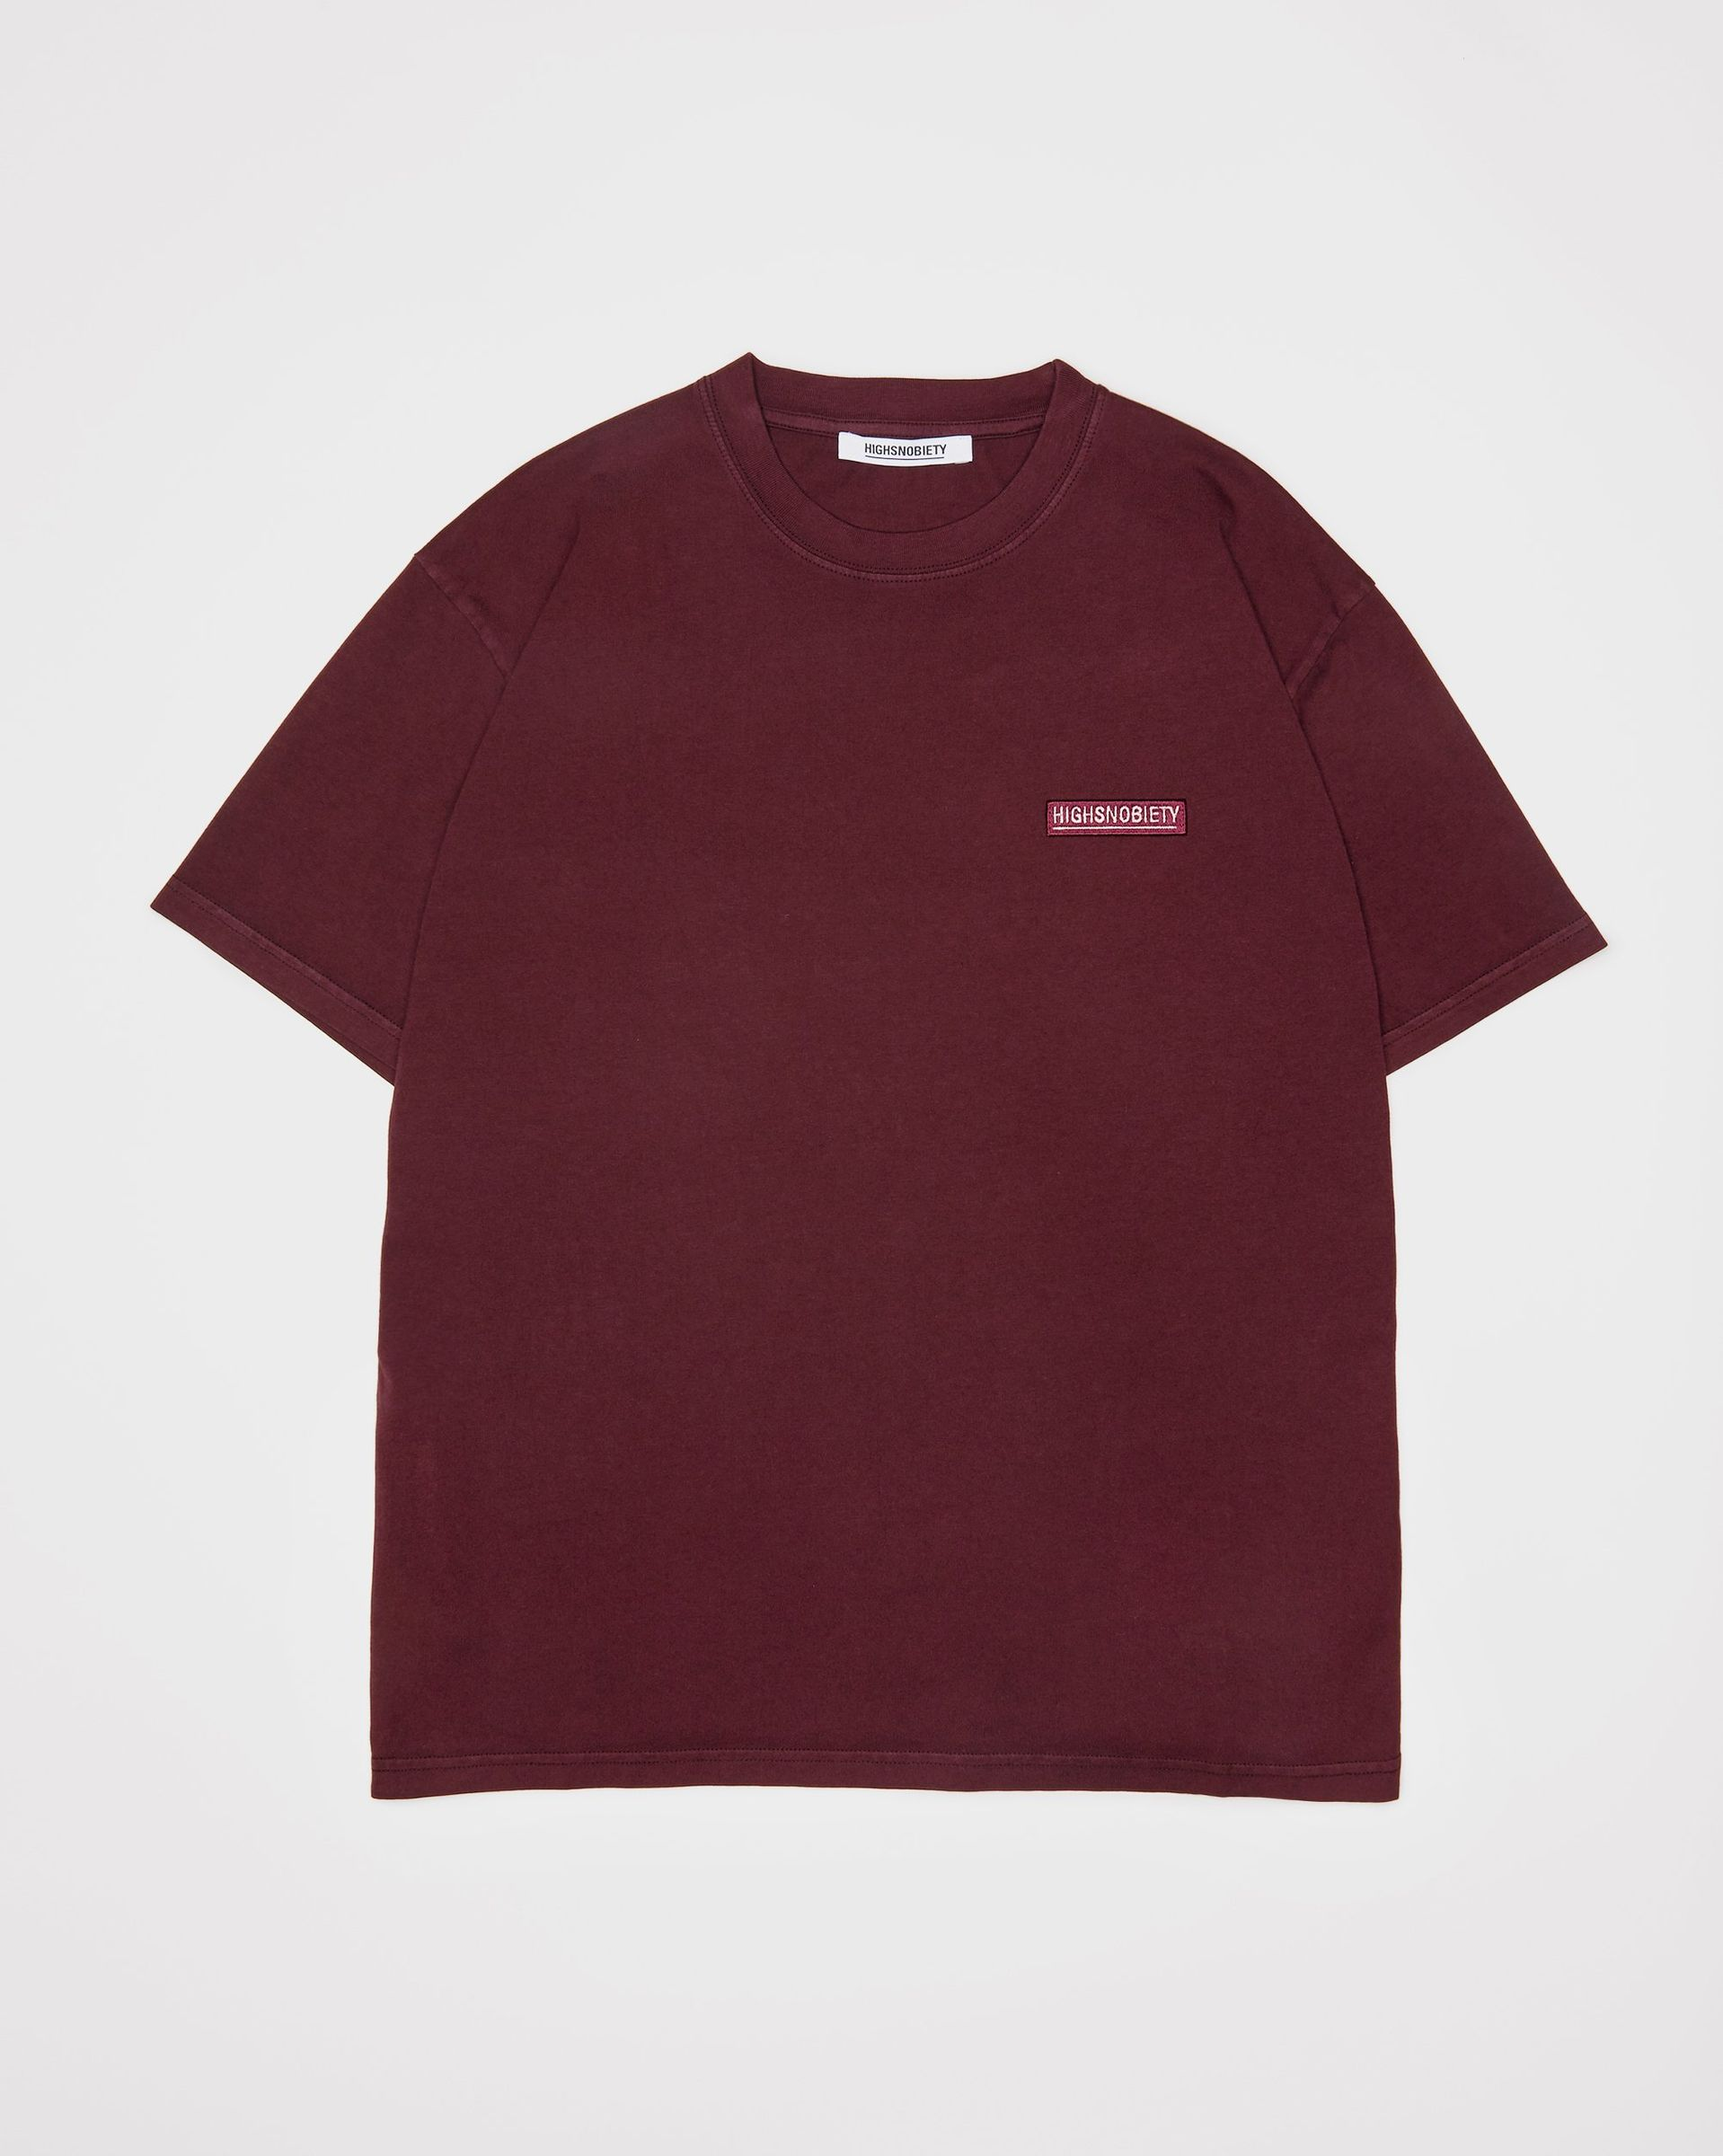 Highsnobiety Staples - T-Shirt Burgundy - Image 1